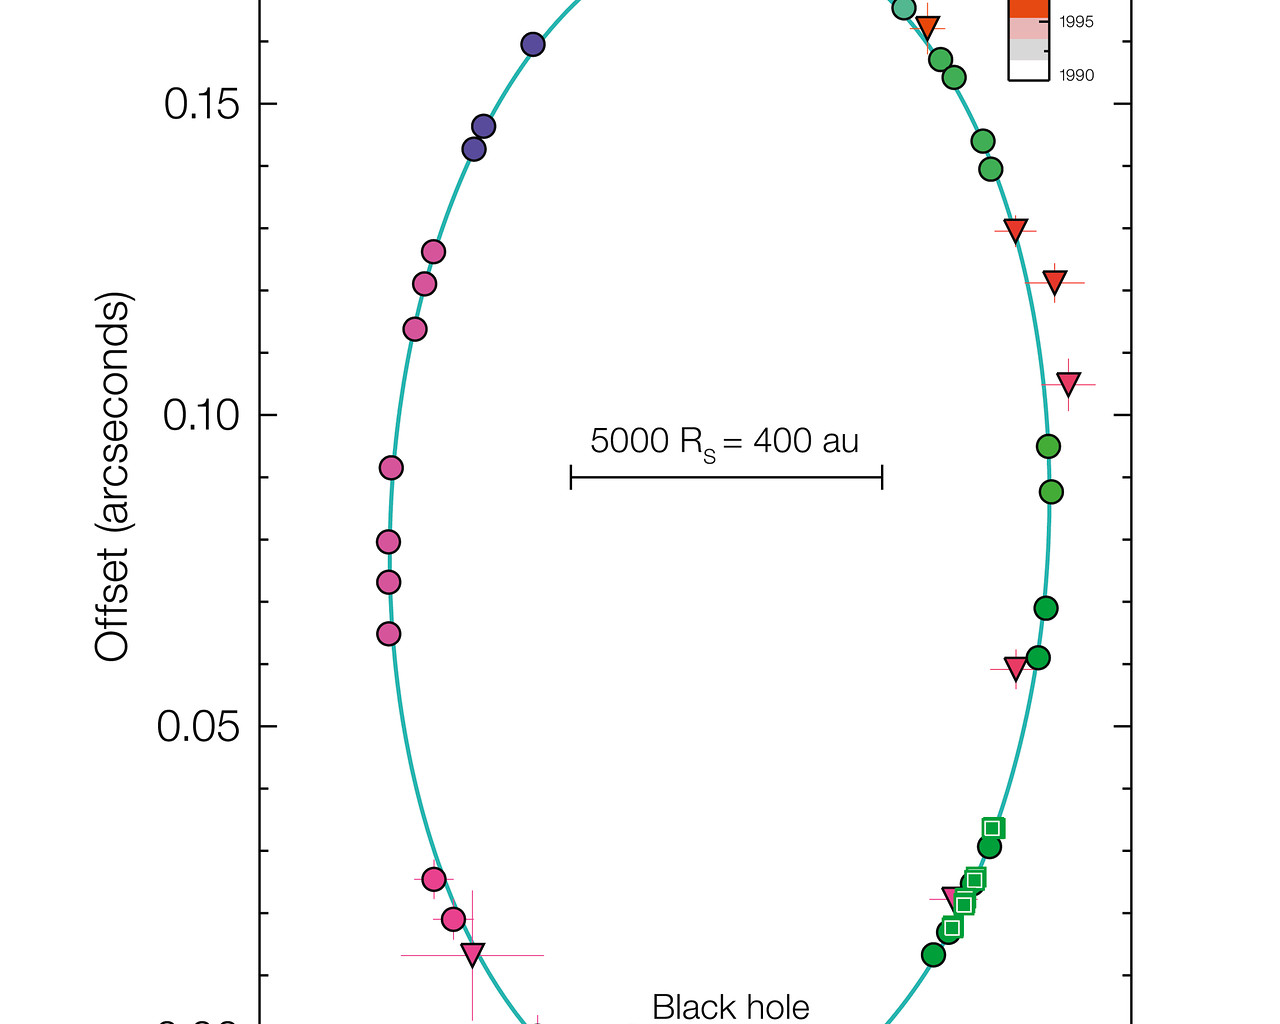 Orbit Diagram Of S2 Around Black Hole At Centre Of The